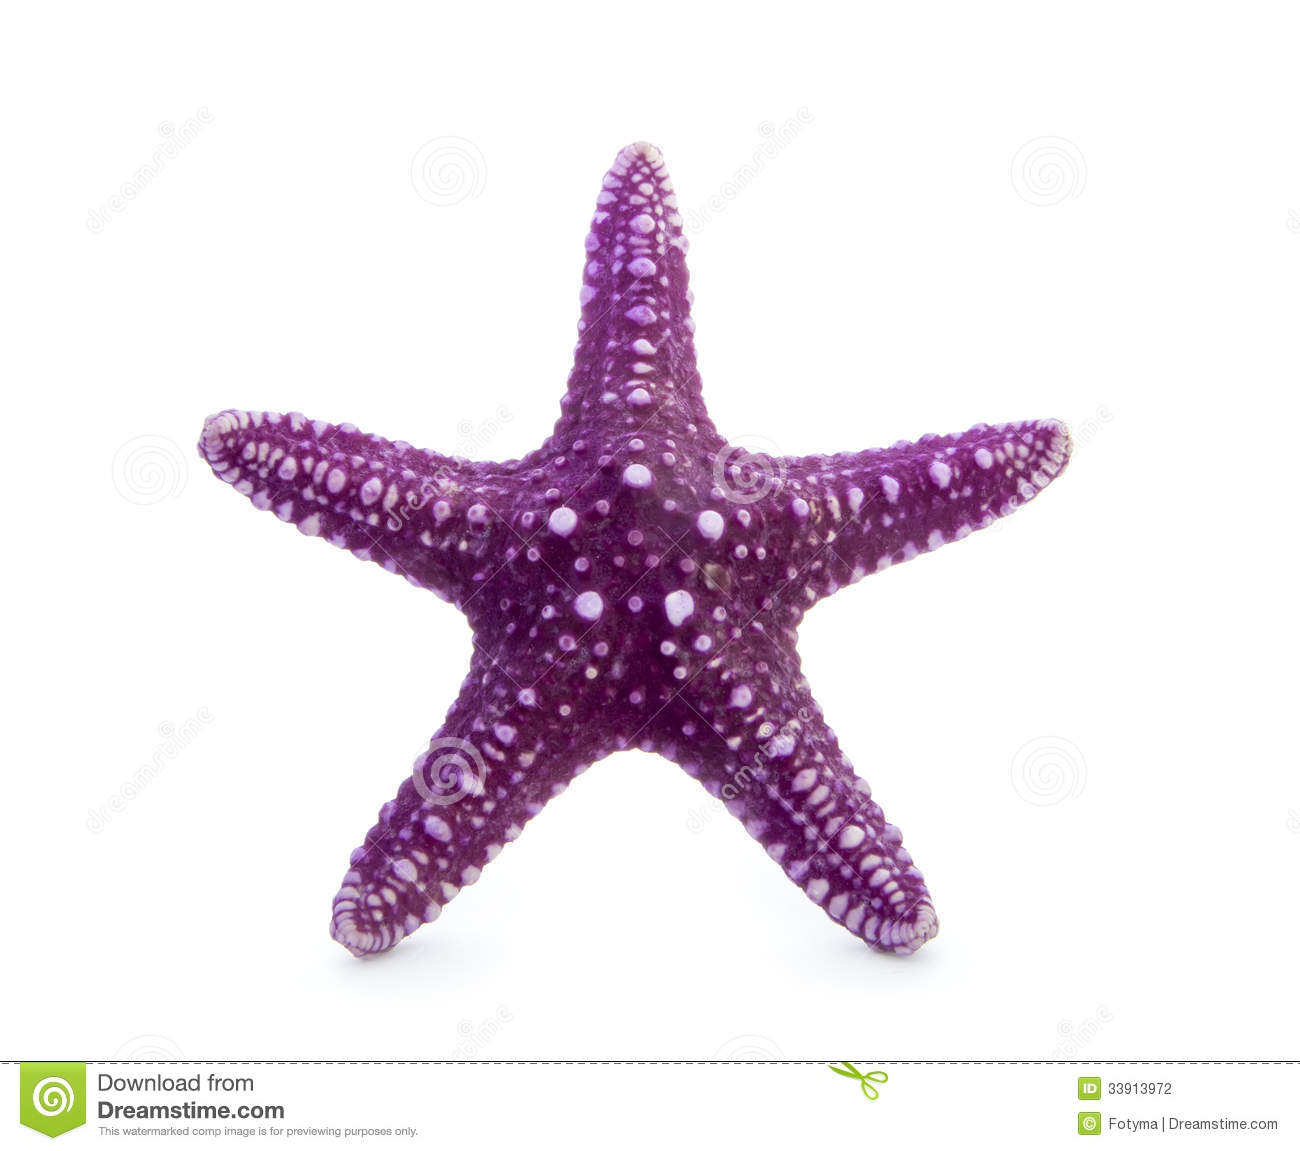 Purple starfish isolated on white background.